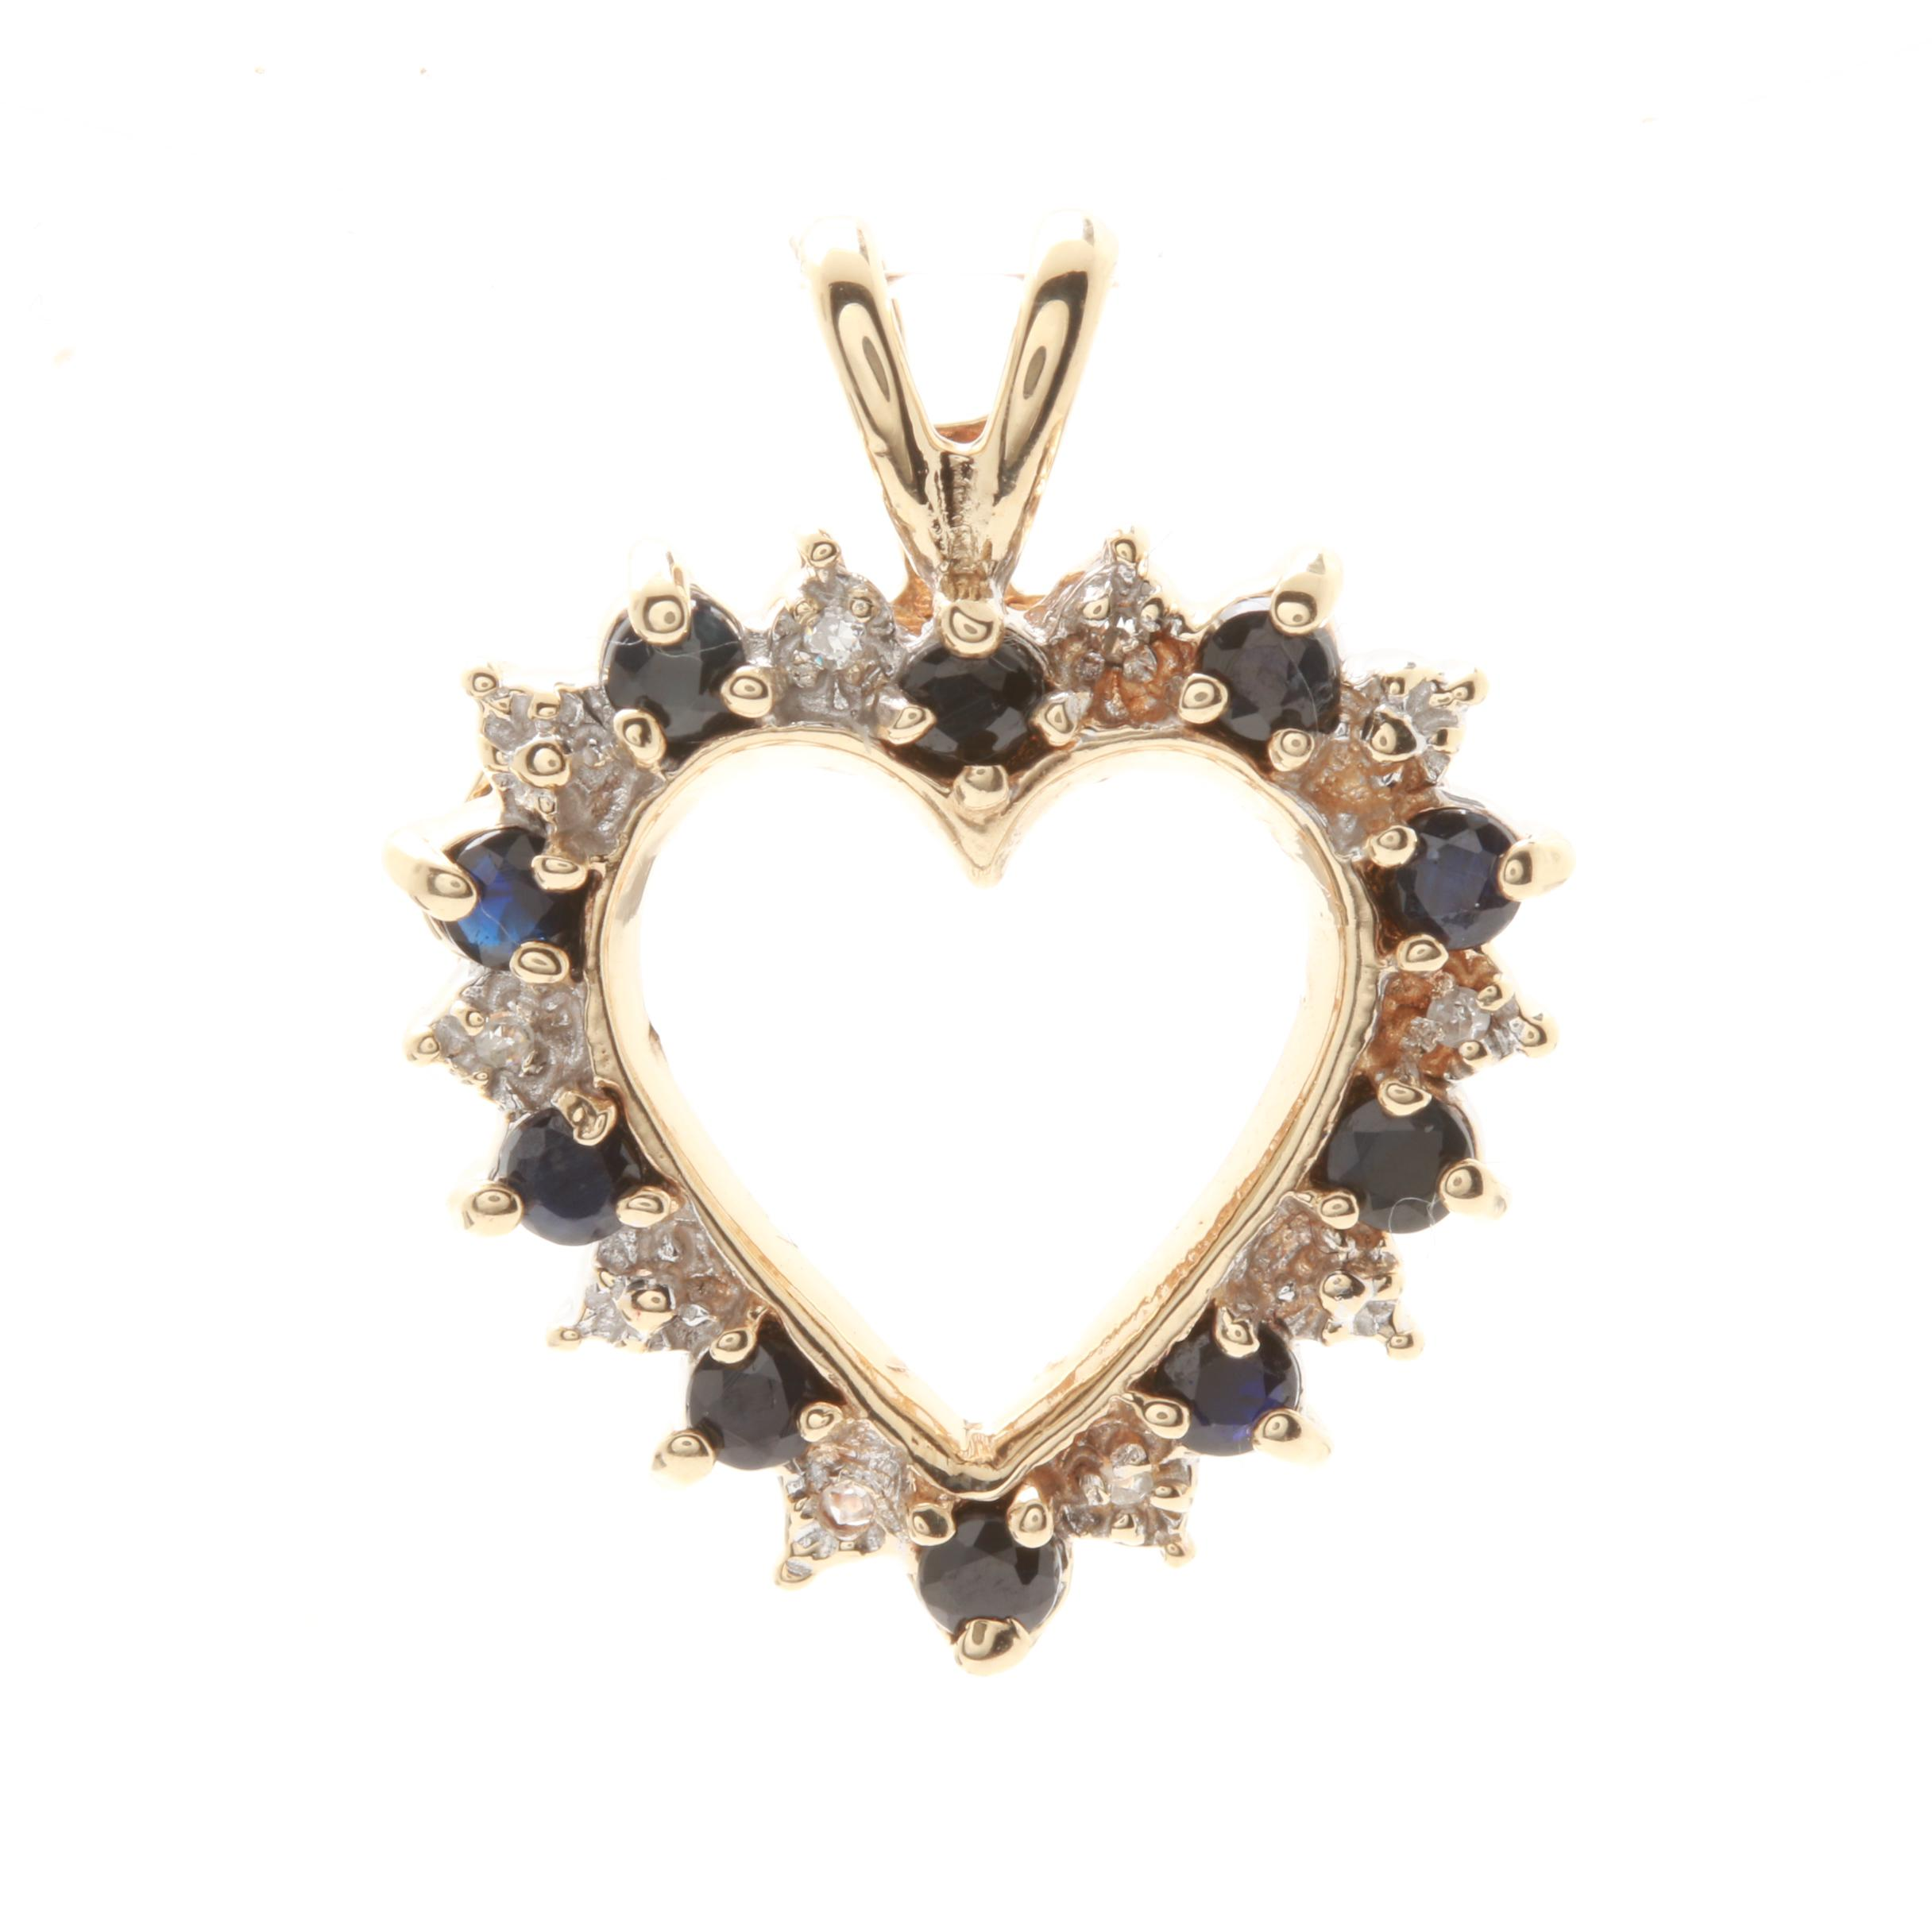 Online Jewelry Auctions Antique Jewelry Auctions Fine Jewelry EBTH